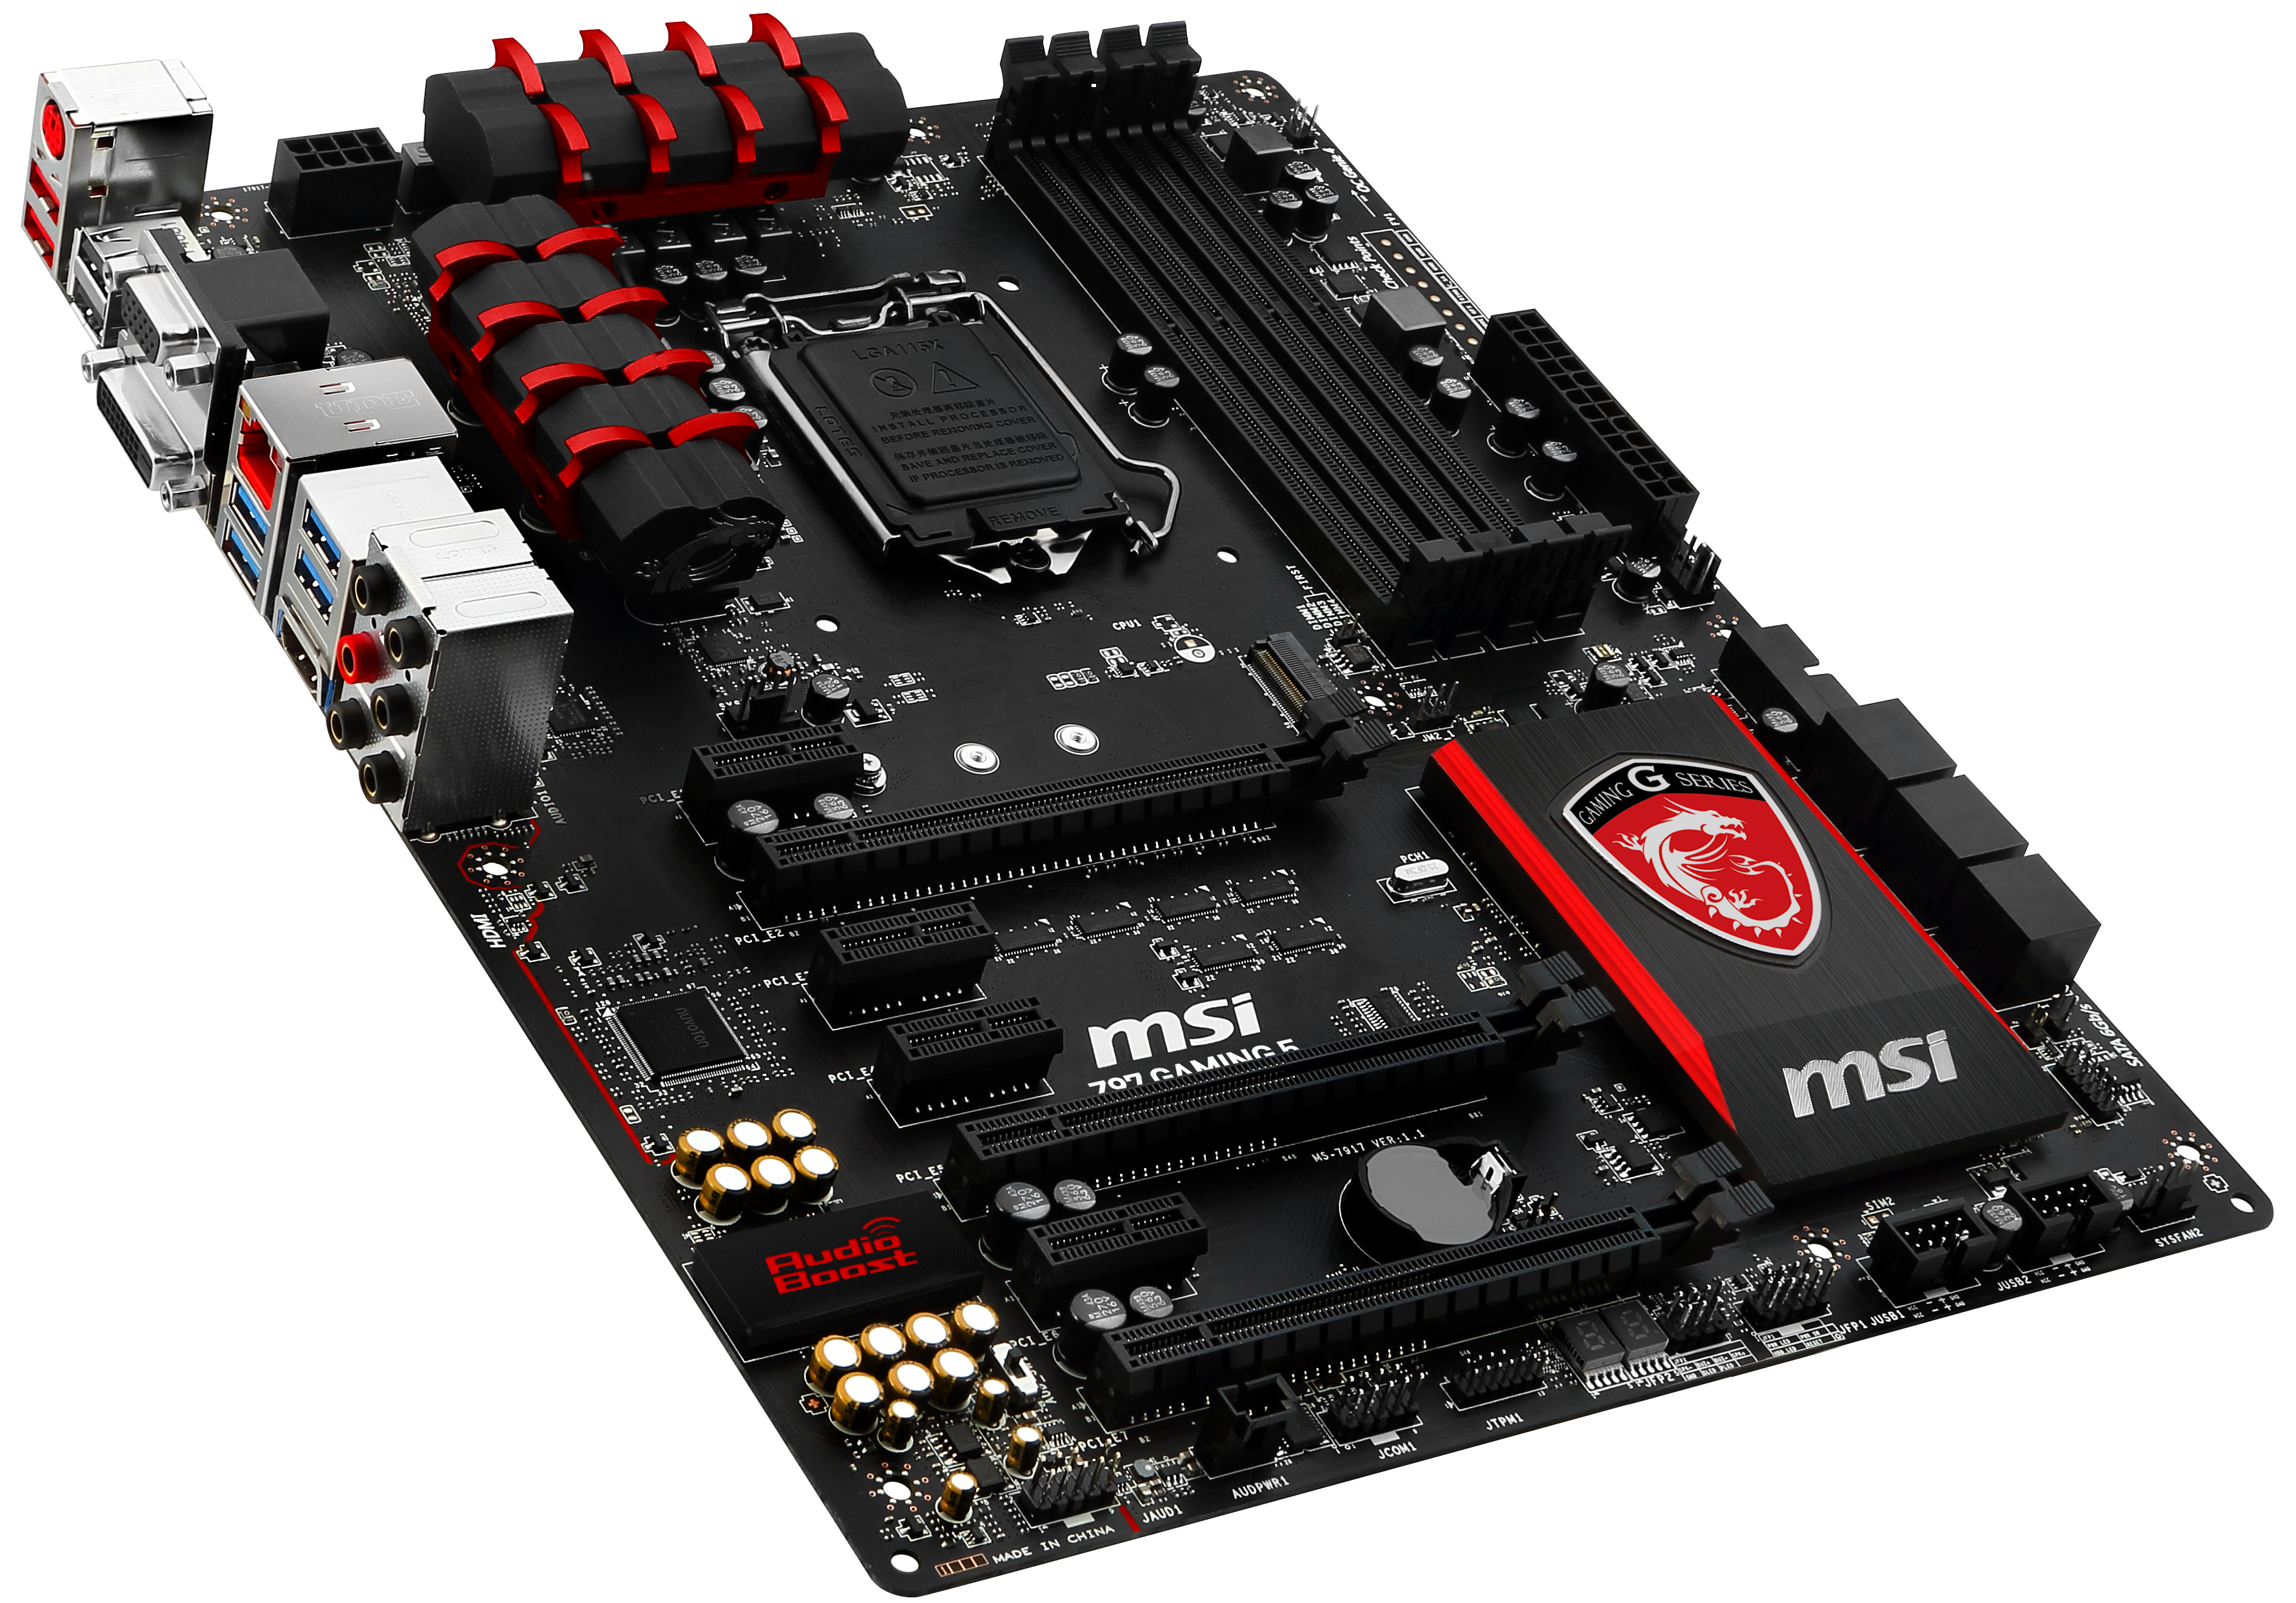 MSI Z97 Gaming 5 Motherboard Review: Five is Alive